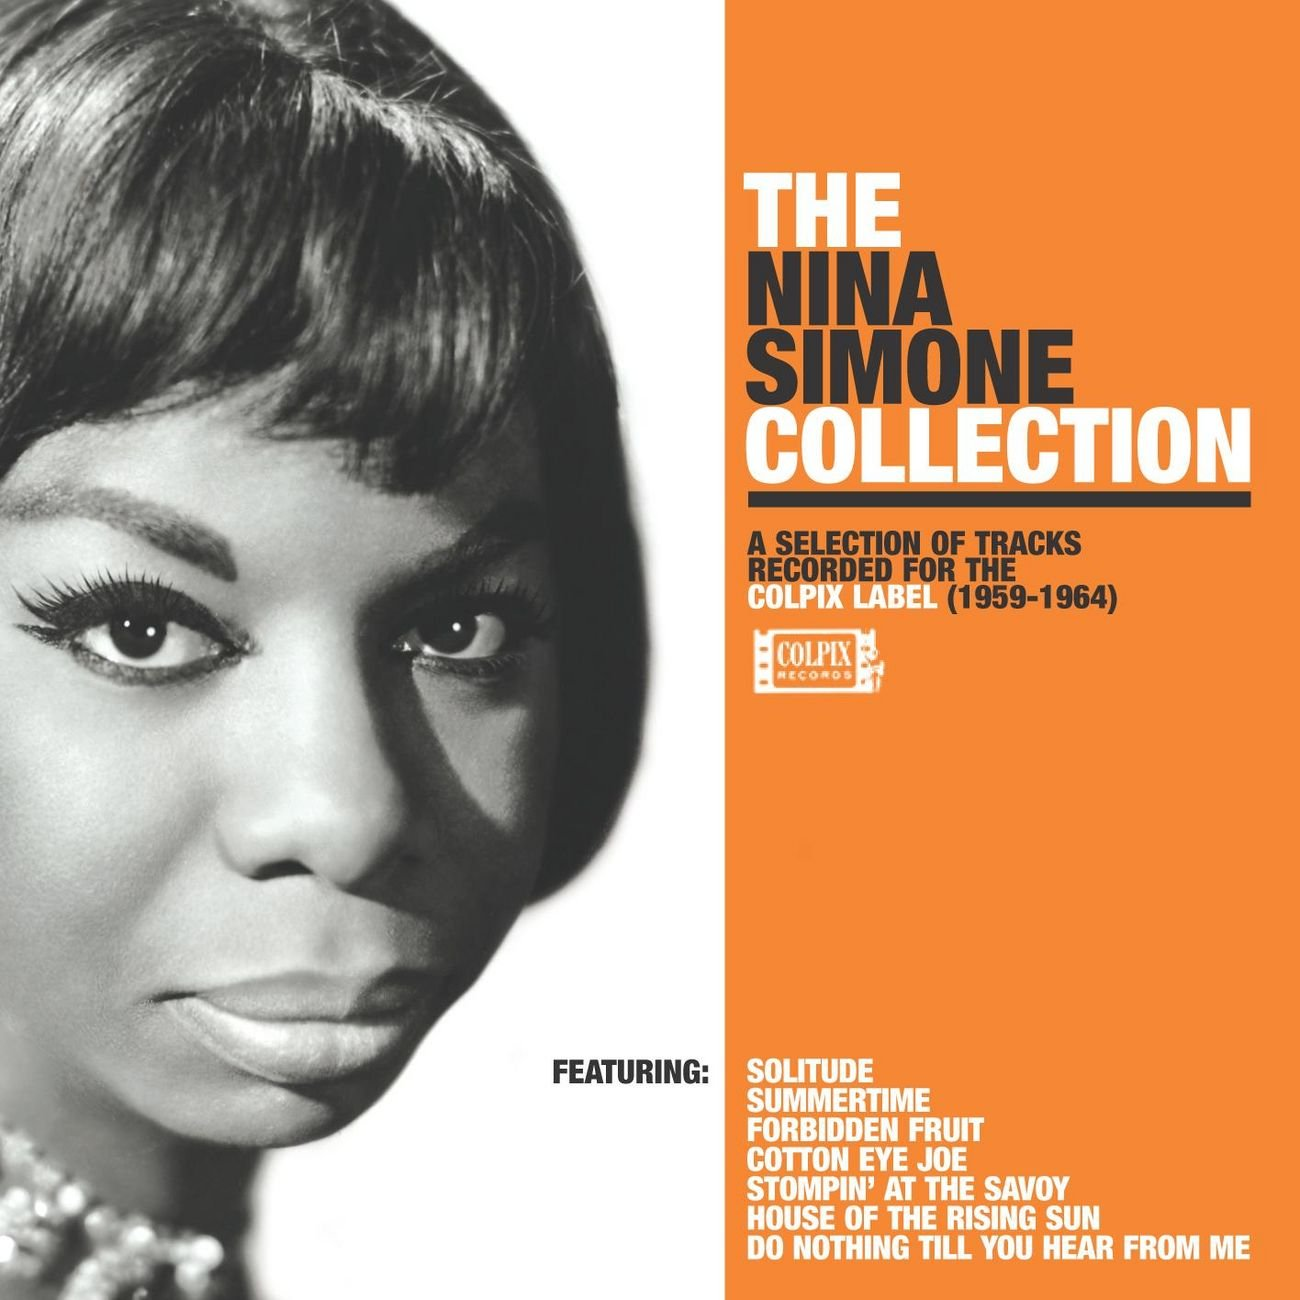 The Nina Simone Collection 1959-1964